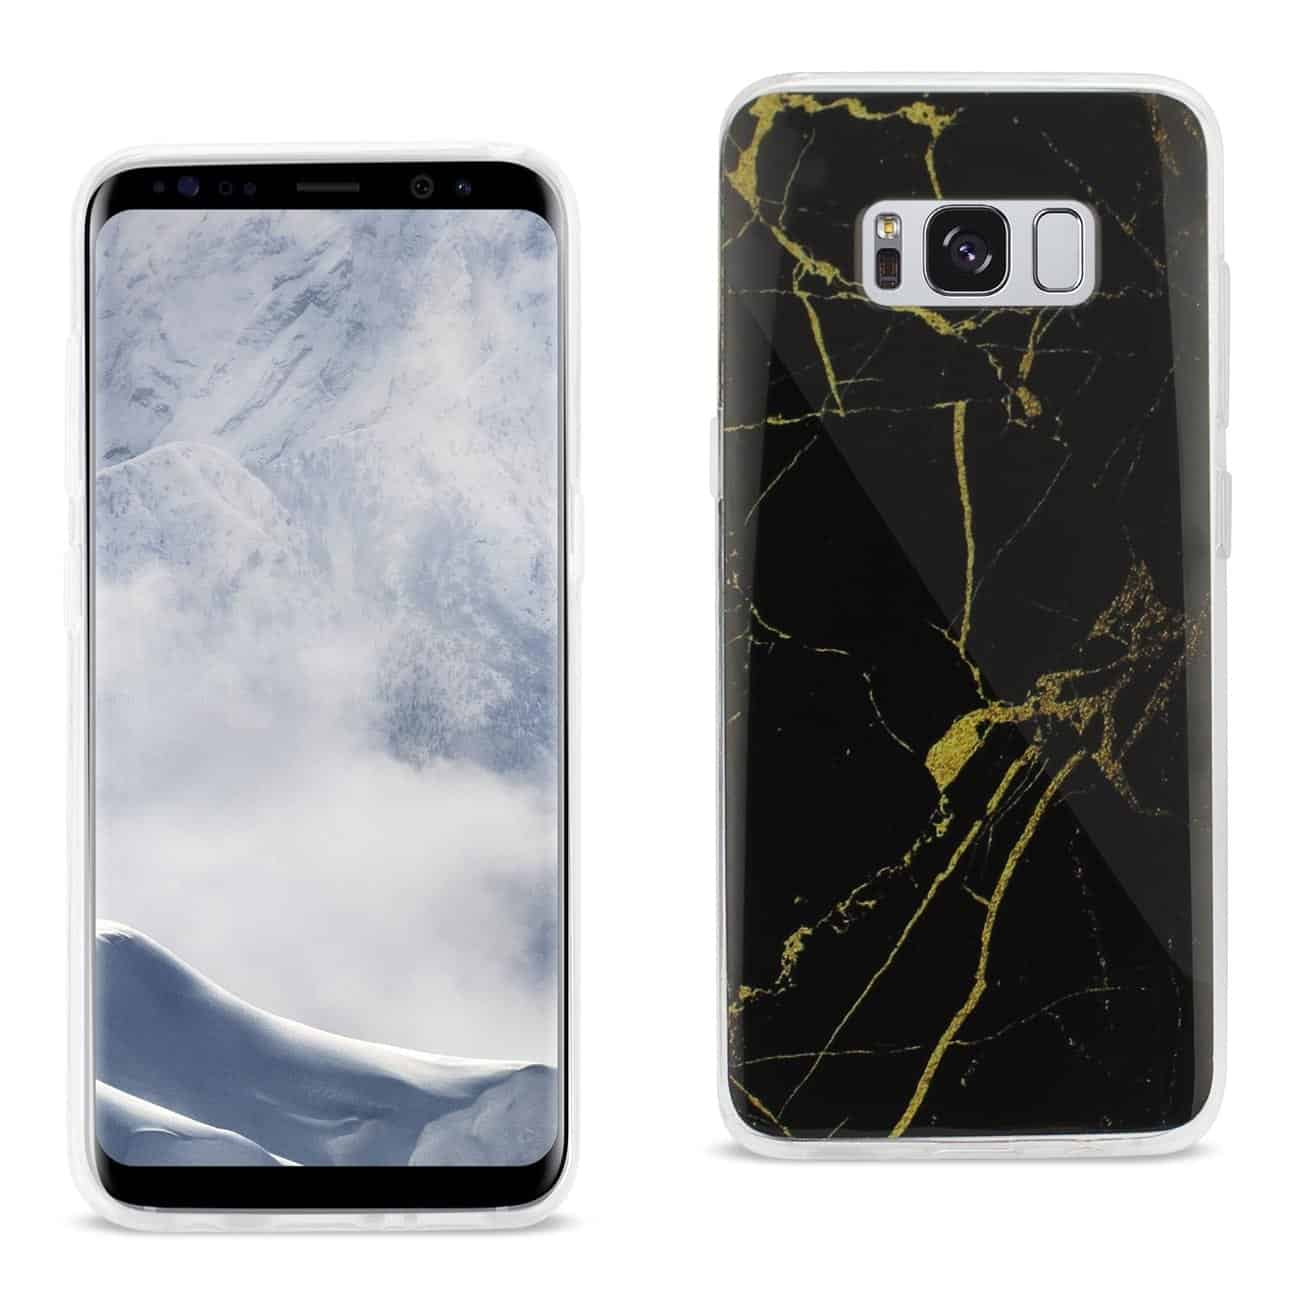 SAMSUNG GALAXY S8 EDGE/ S8 PLUS STREAK MARBLE IPHONE COVER IN BLACK